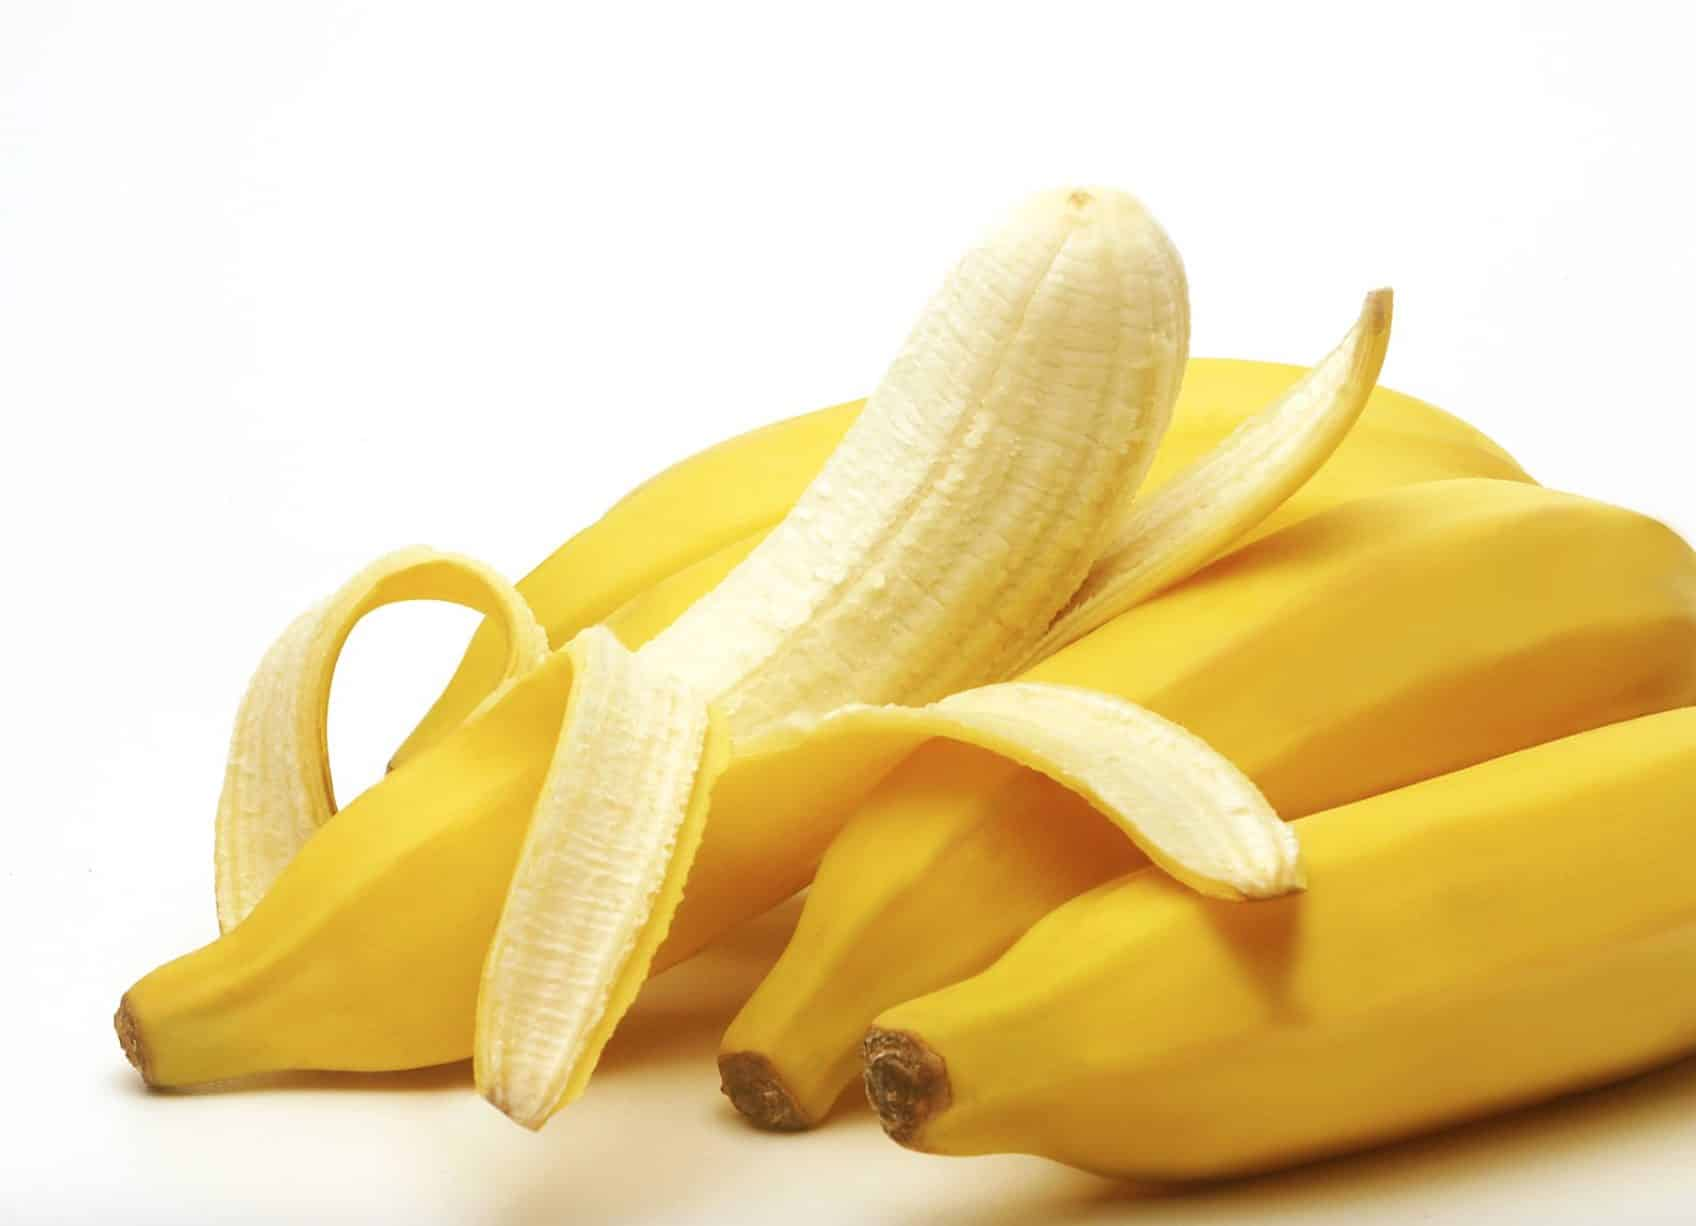 Dogs that eat bananas can be rewarded with tons of amazing health benefits.